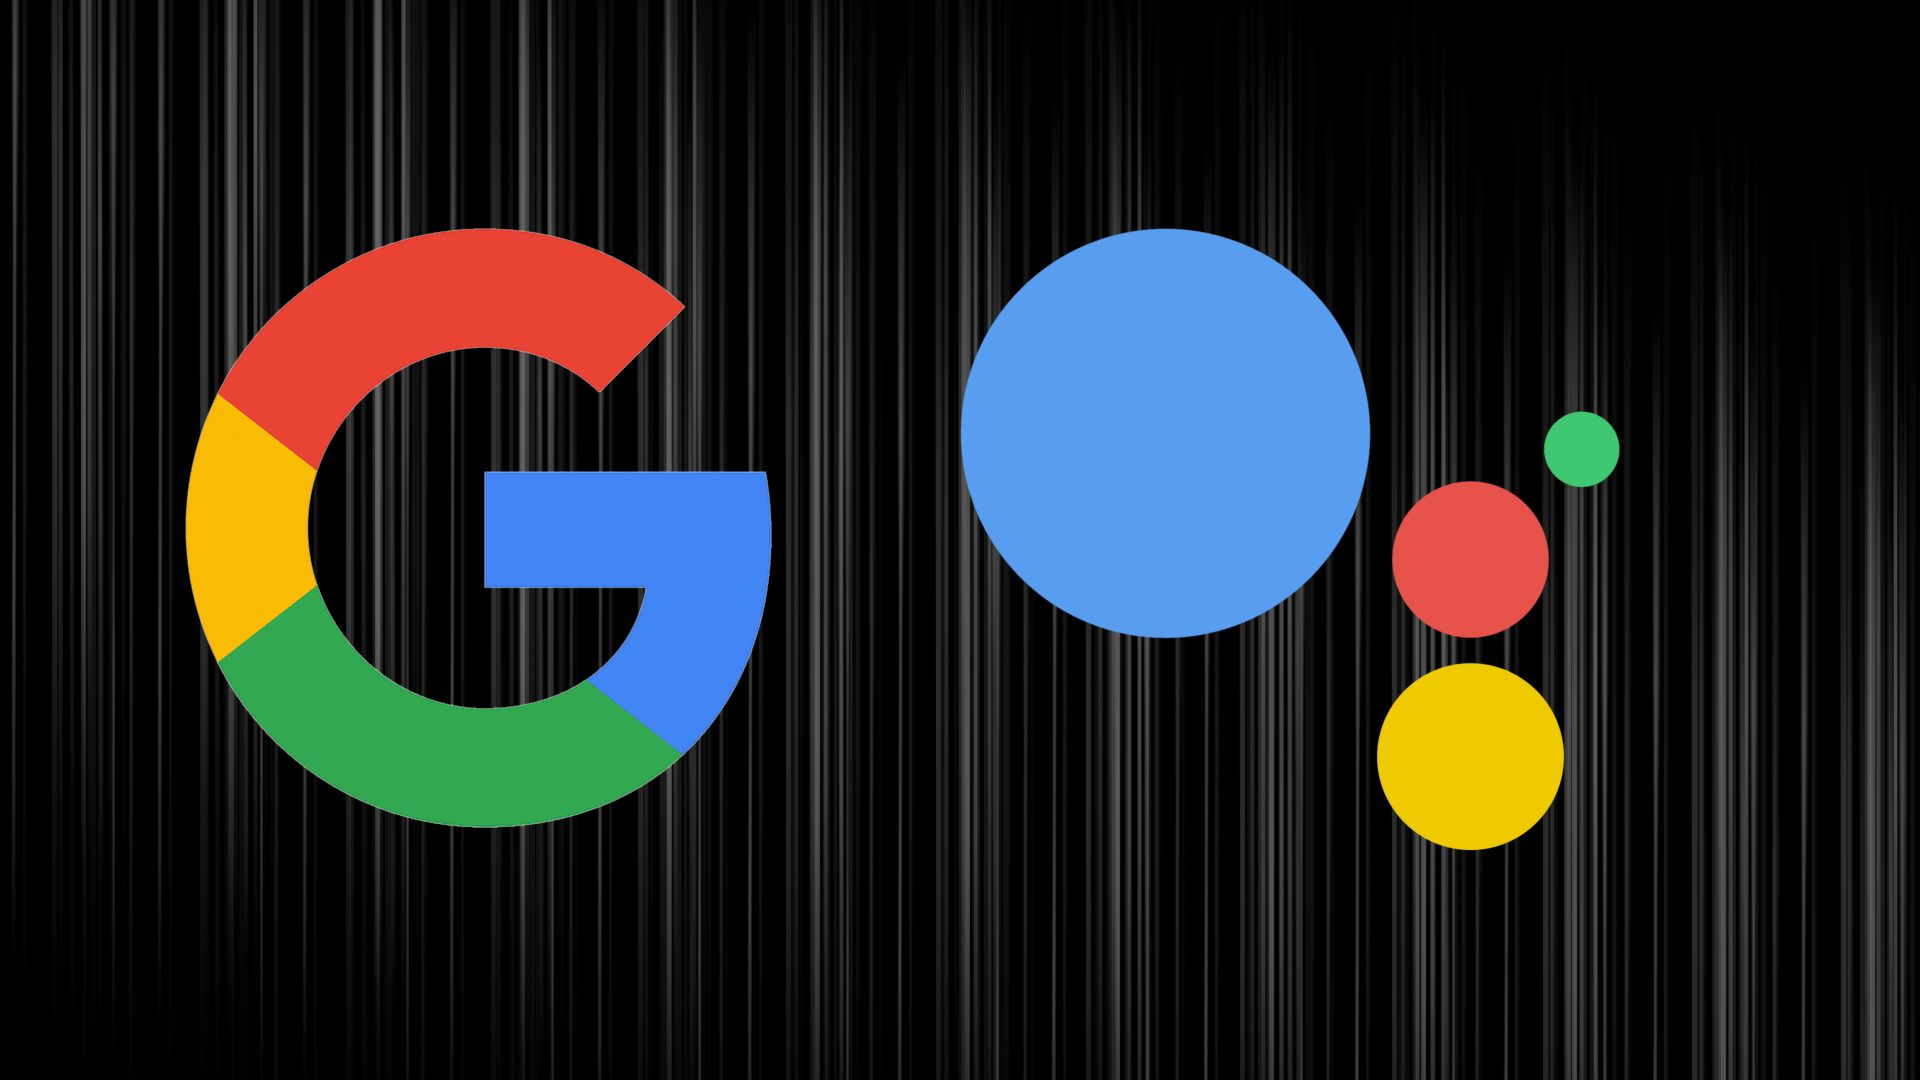 Your Guide To Using Google Assistant And The Google Search